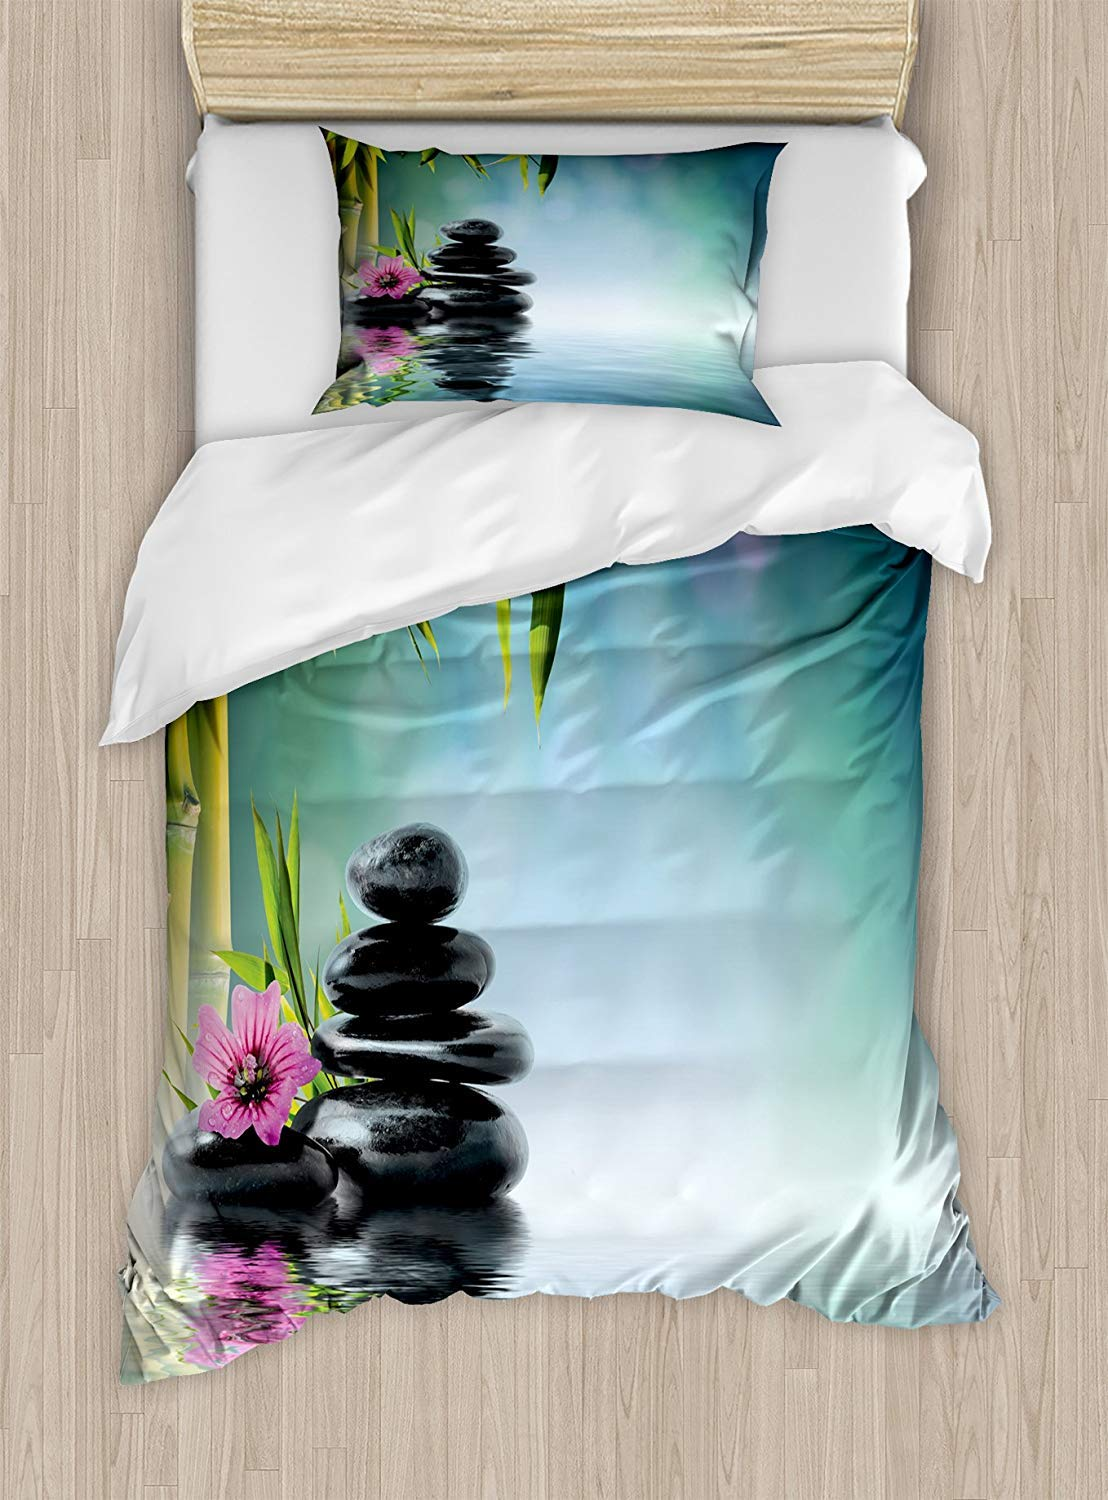 MAIANNE Zen Garden Twin Size Duvet Cover Set, Pink Flower Spa Stones and Bamboo Tree on The Water Relaxation Theraphy Peace, Decorative 4 Piece Bedding Set with 2 Pillowcases, Multicolor